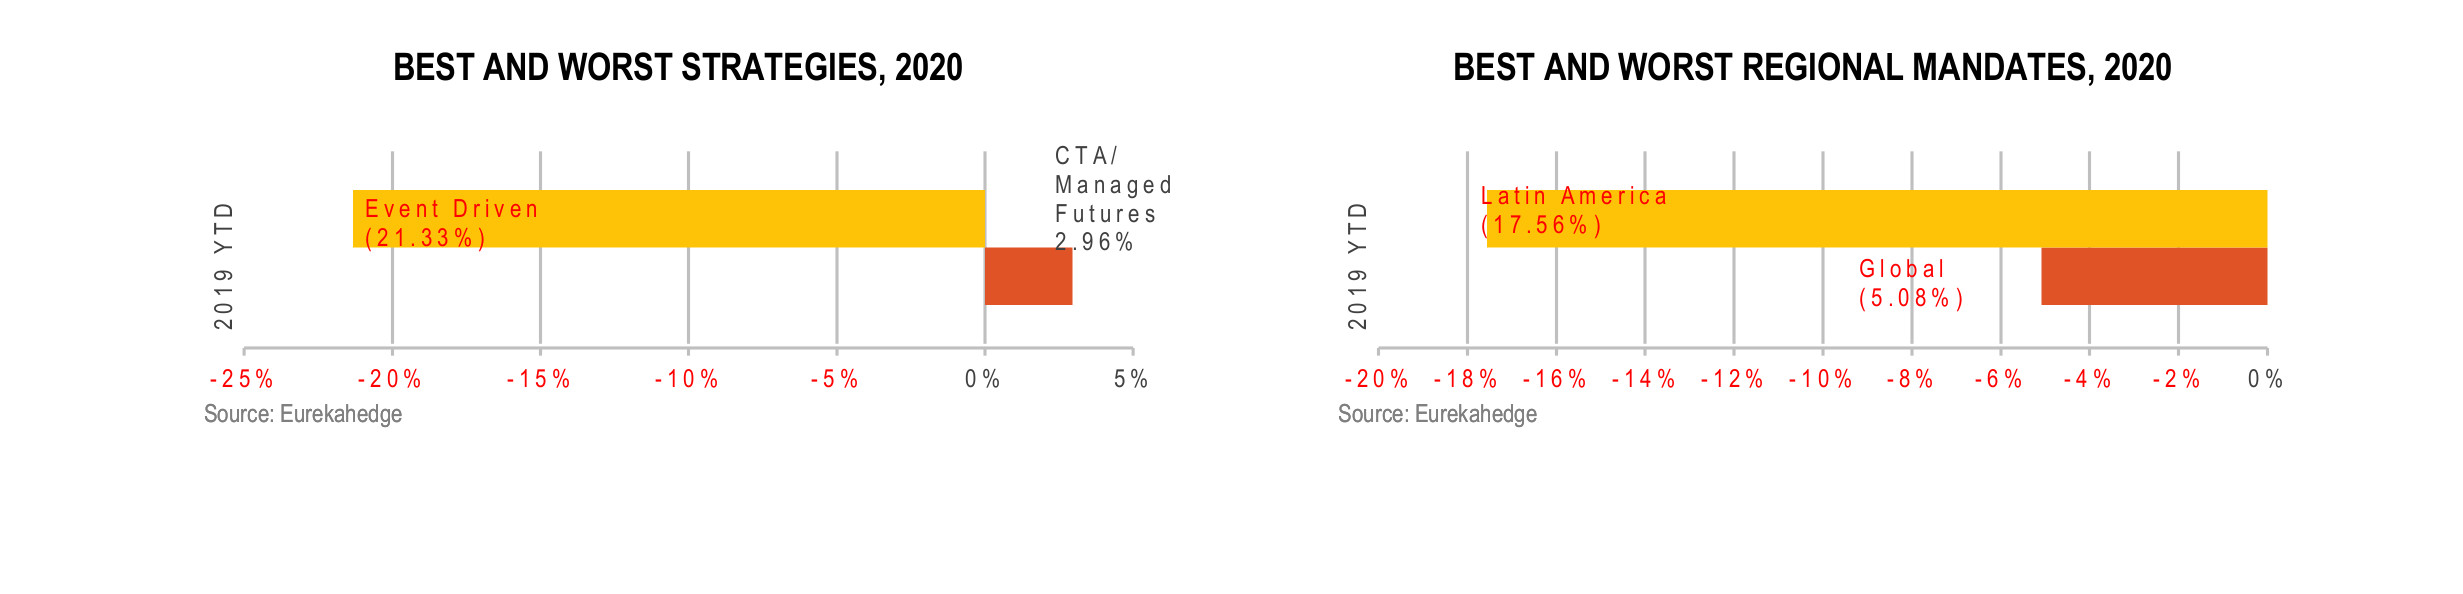 North American Hedge Funds Infographic May 2020 - best and worst strategy and regional mandate 2020